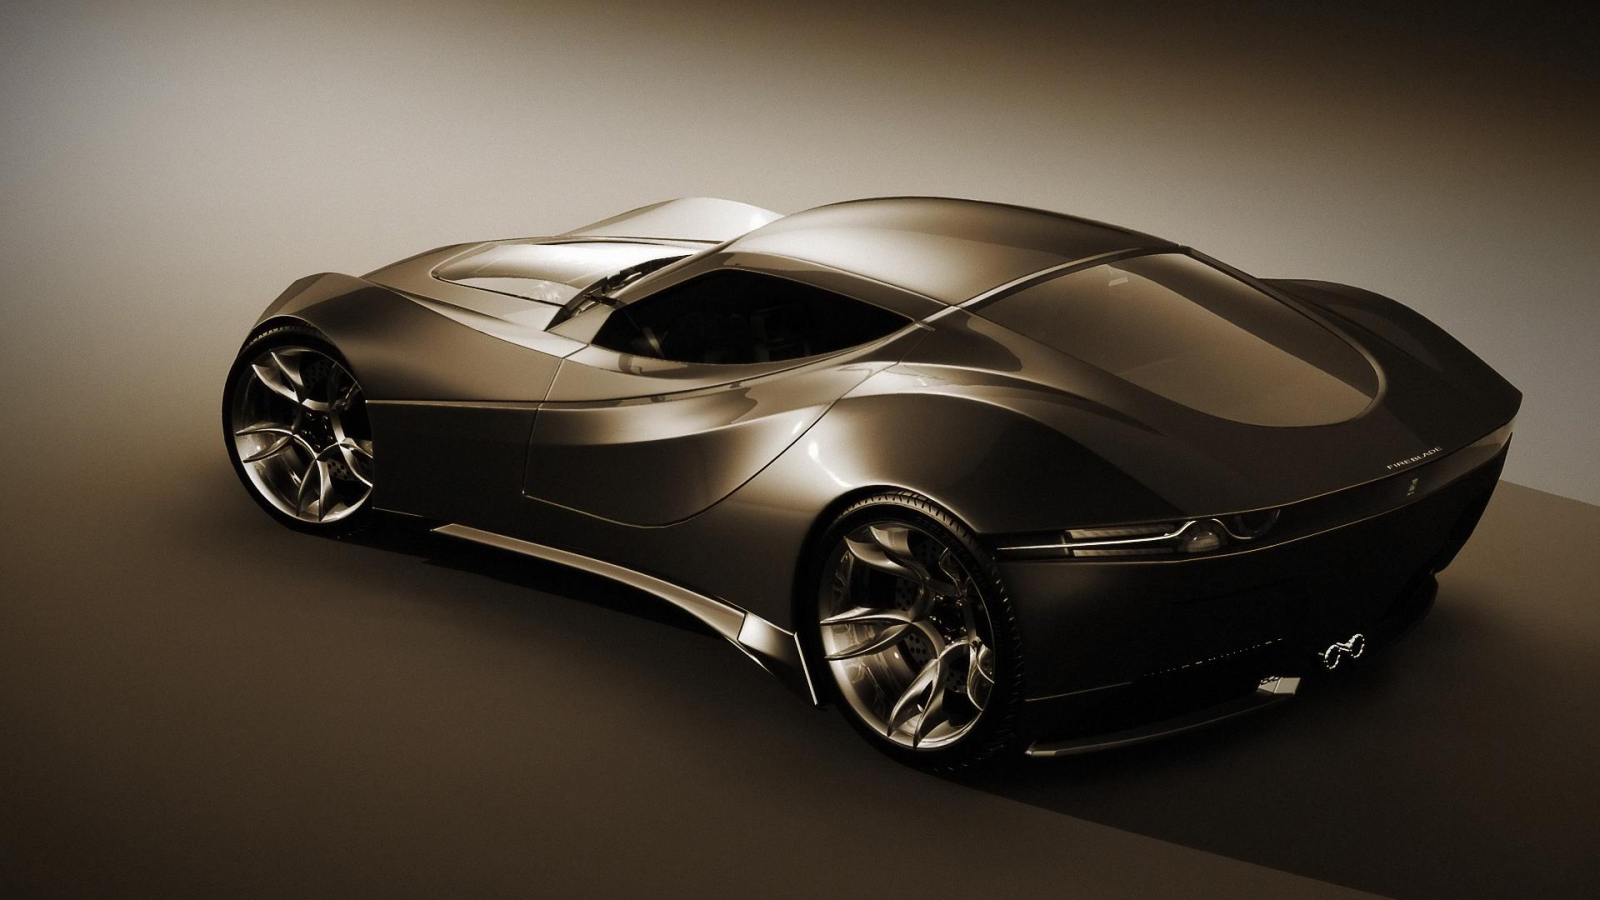 Free download 1080p 1920x1080 auto wallpapers bmw car ...